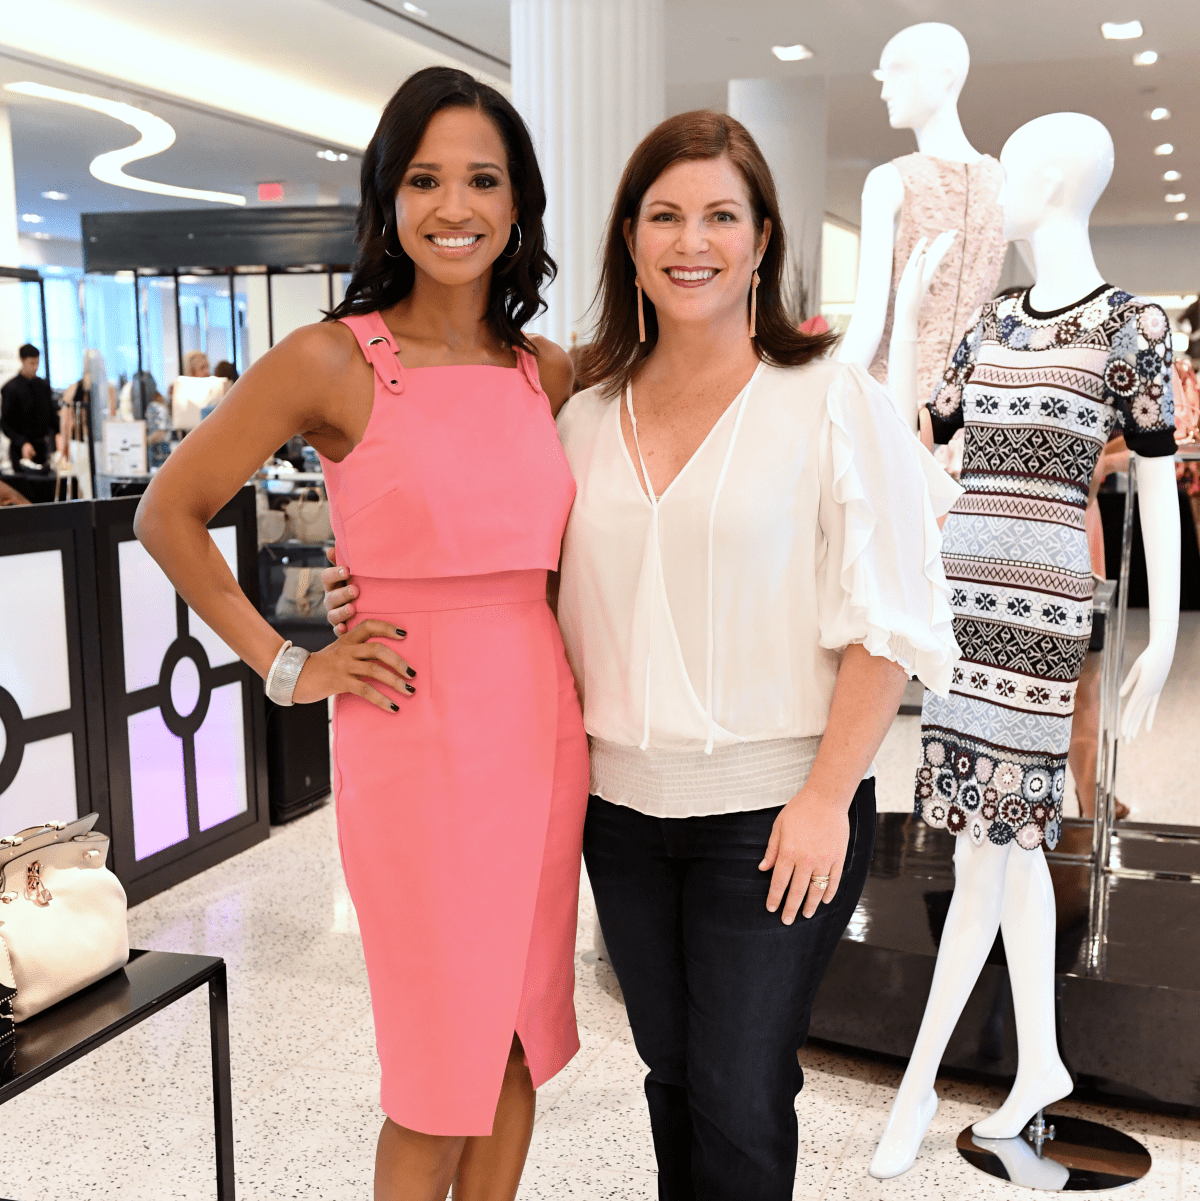 Houston, Women of Wardrobe Summer Soiree, August 2017, Mia Gradney, Lauren Levicki Courville